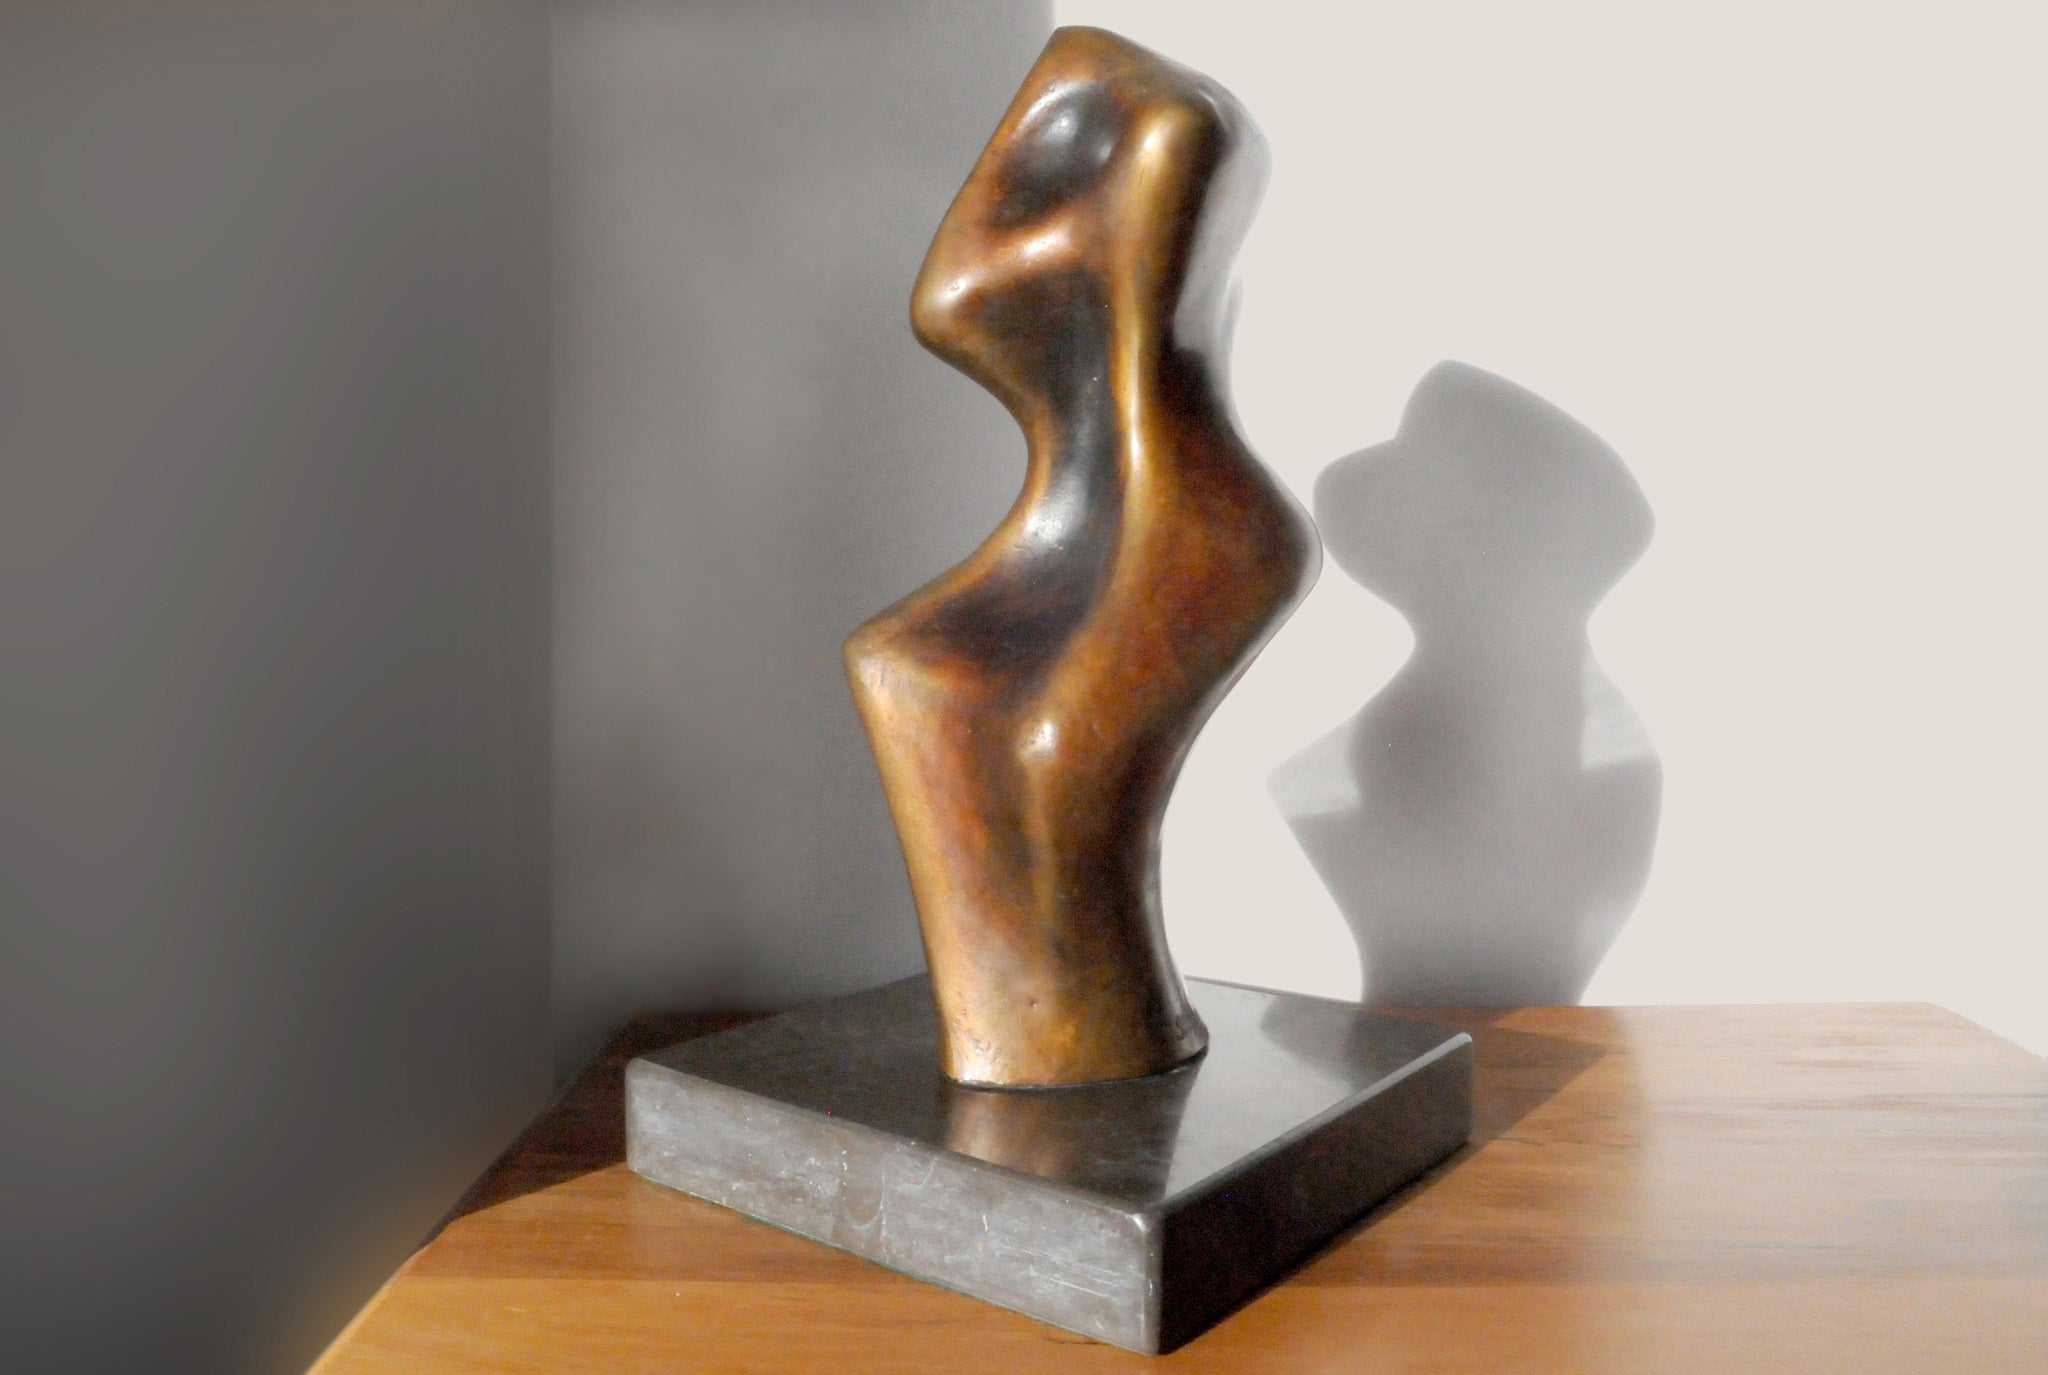 Abstract bronze sculpture for sale by Stephen Williams | New Zealand.